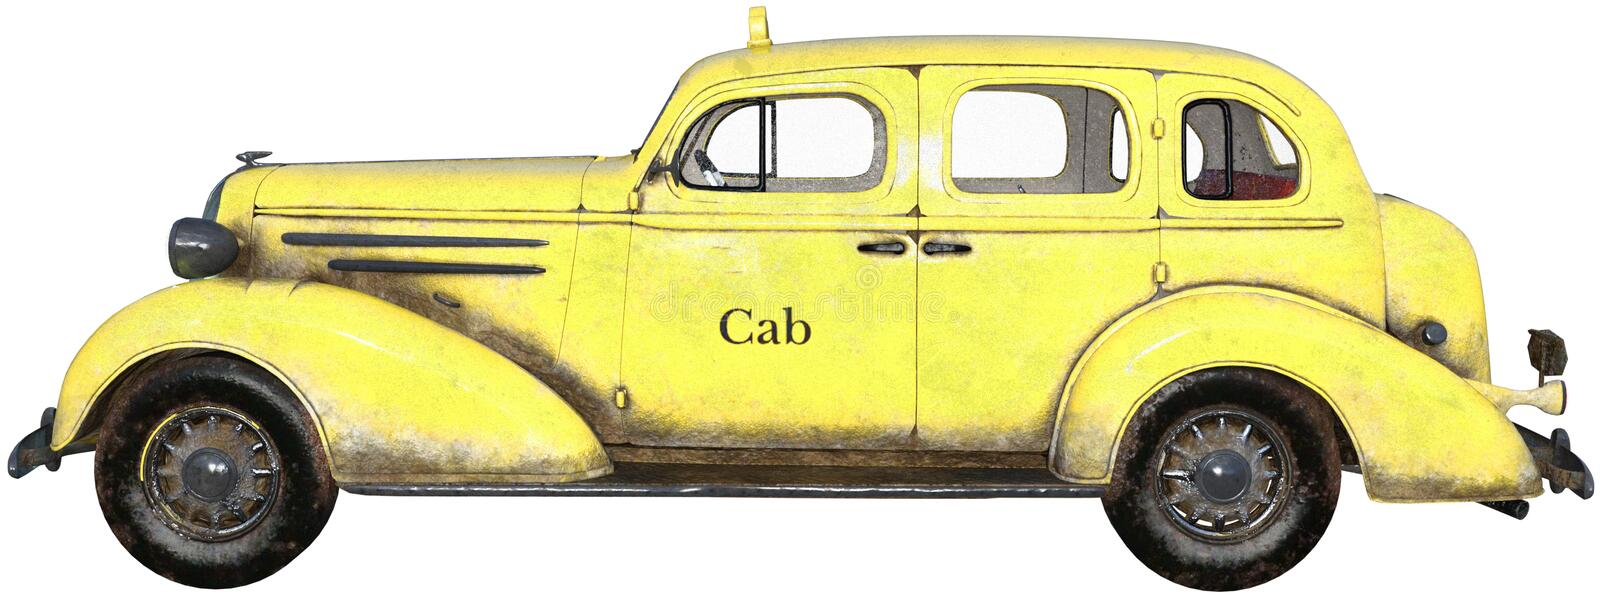 Old Vintage Retro Taxi Cab Isolated stock illustration